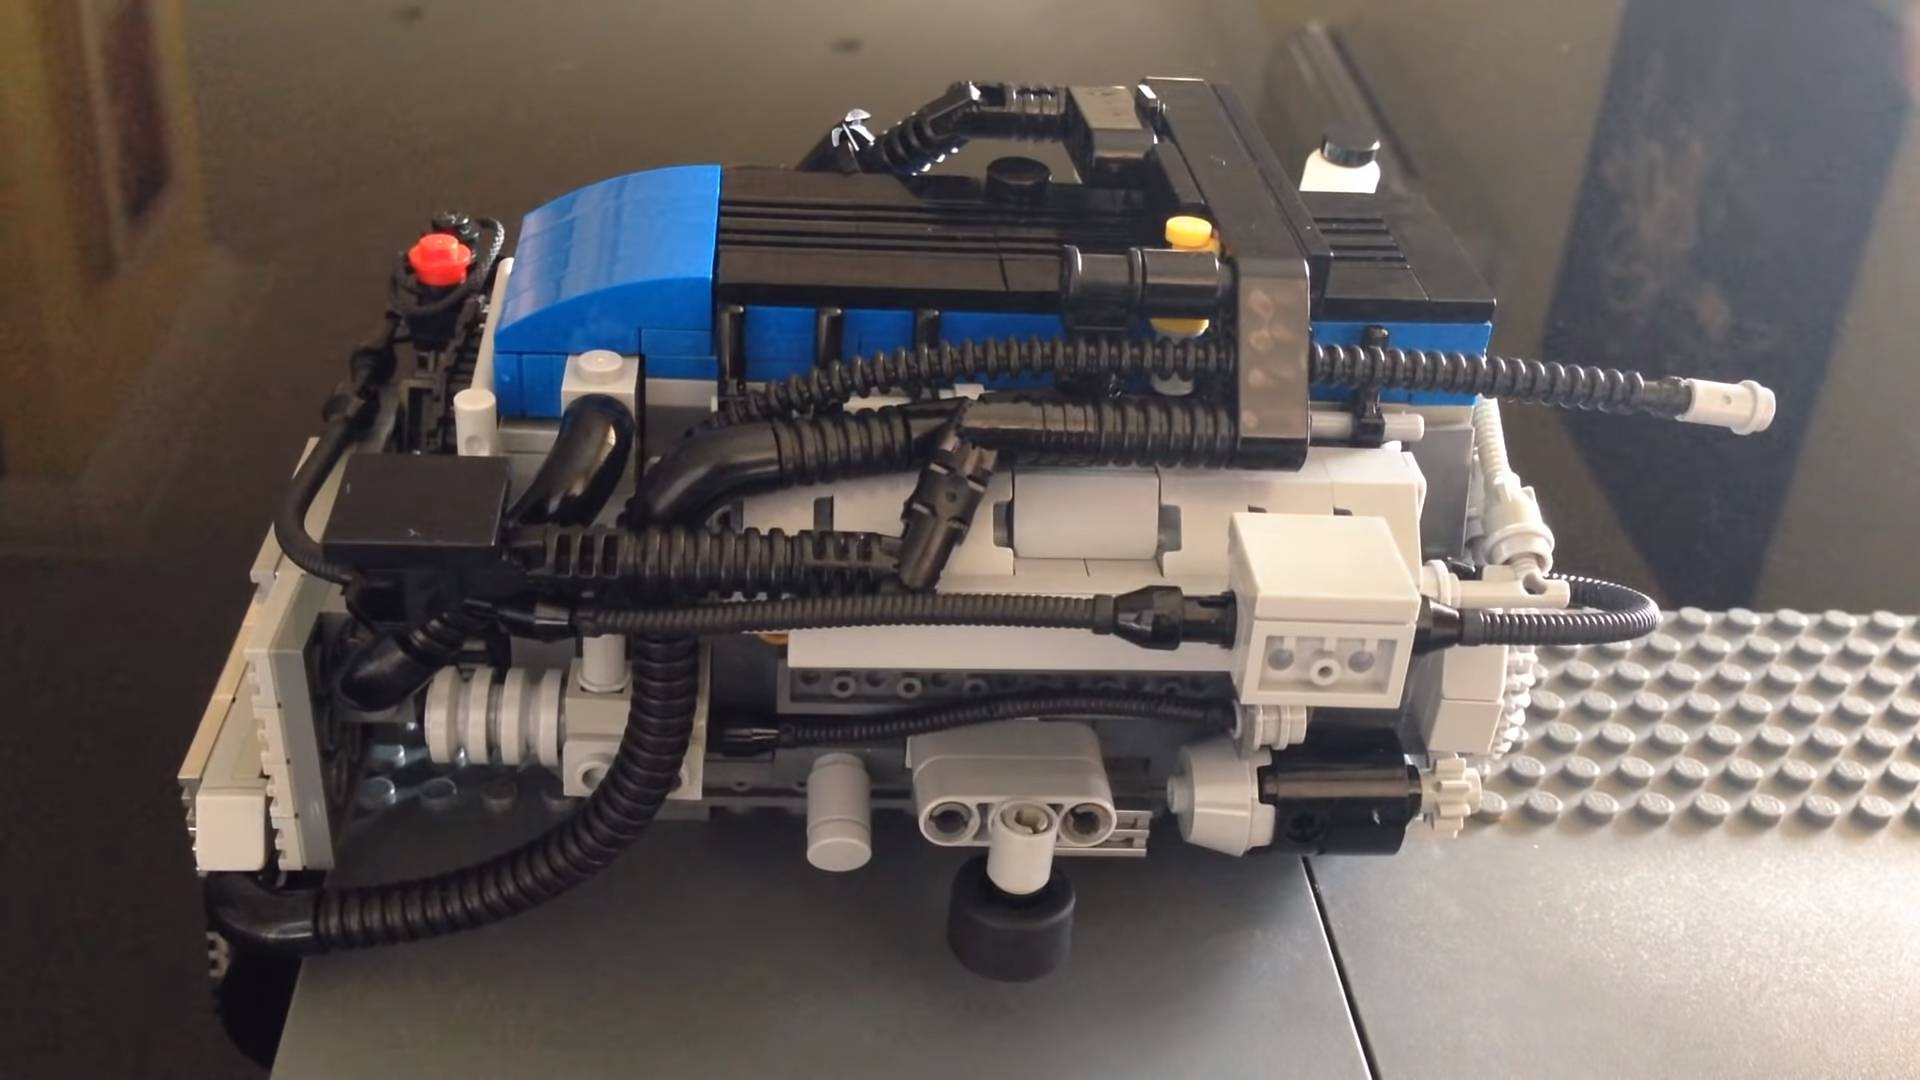 Ford Falcon Fan Builds Functional Lego 4 0-Liter I6 Turbo Engine